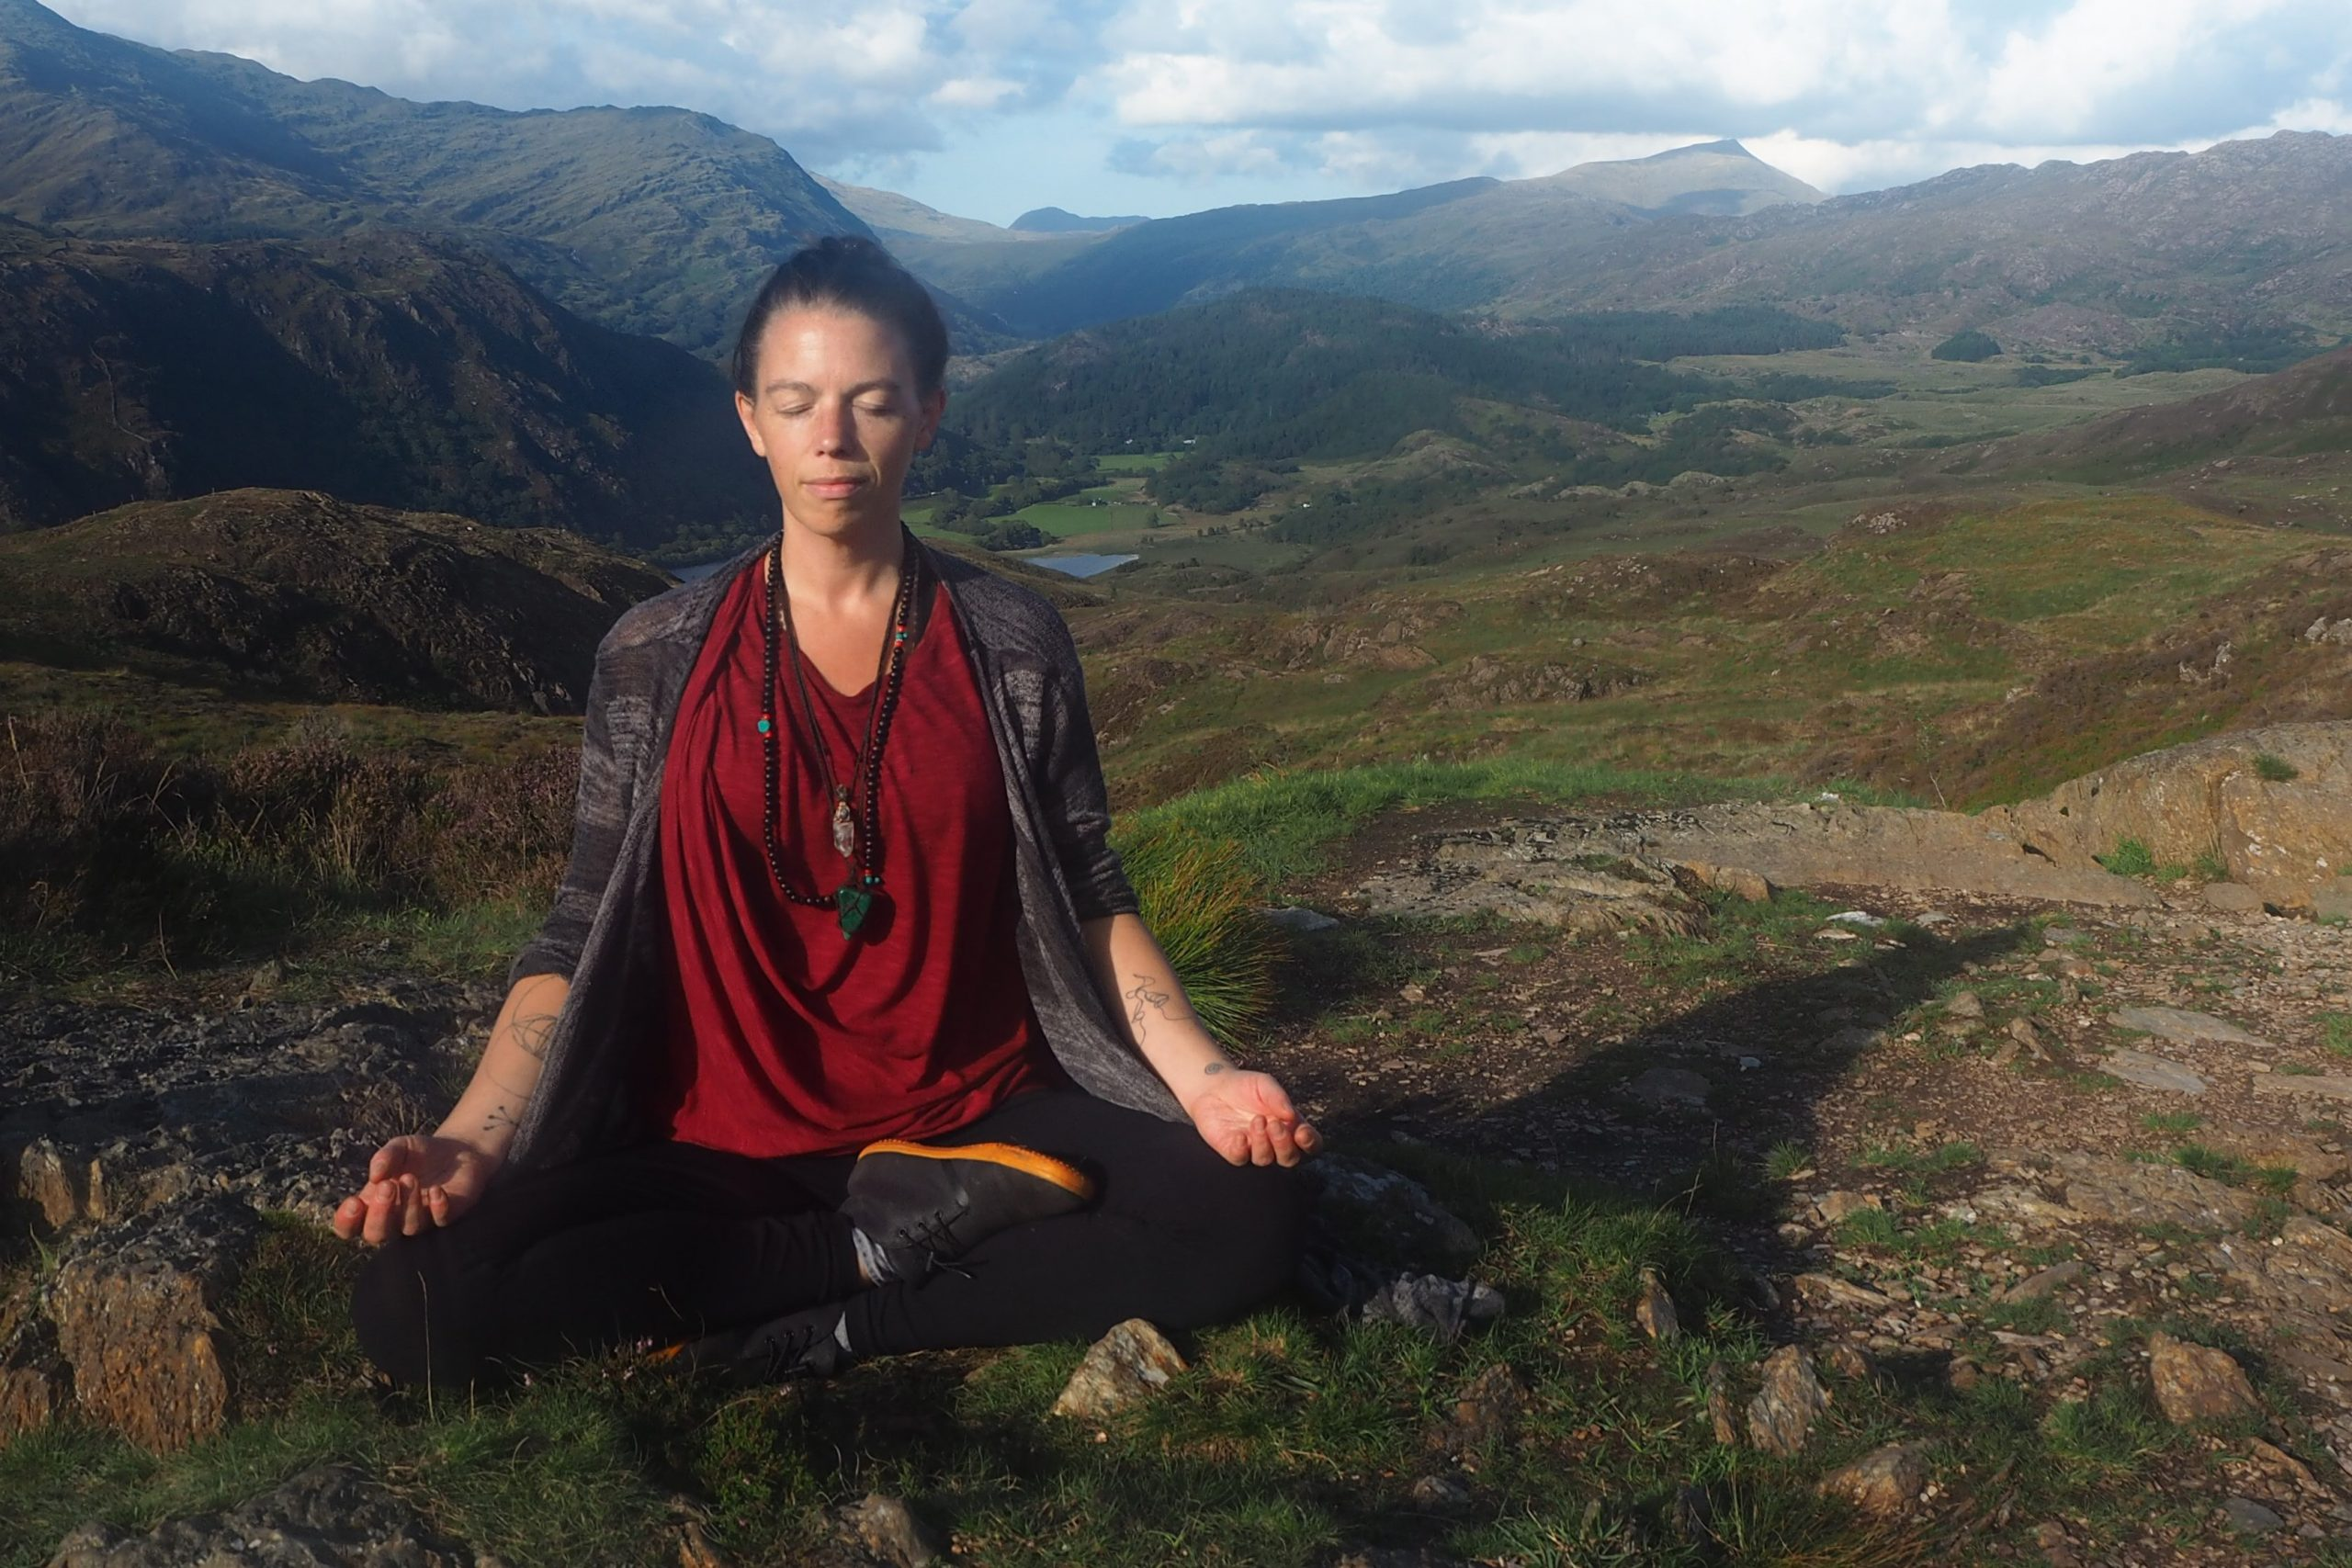 Gillian Torres of Mindfulness Liverpool practicing mindfulness on a hillside.